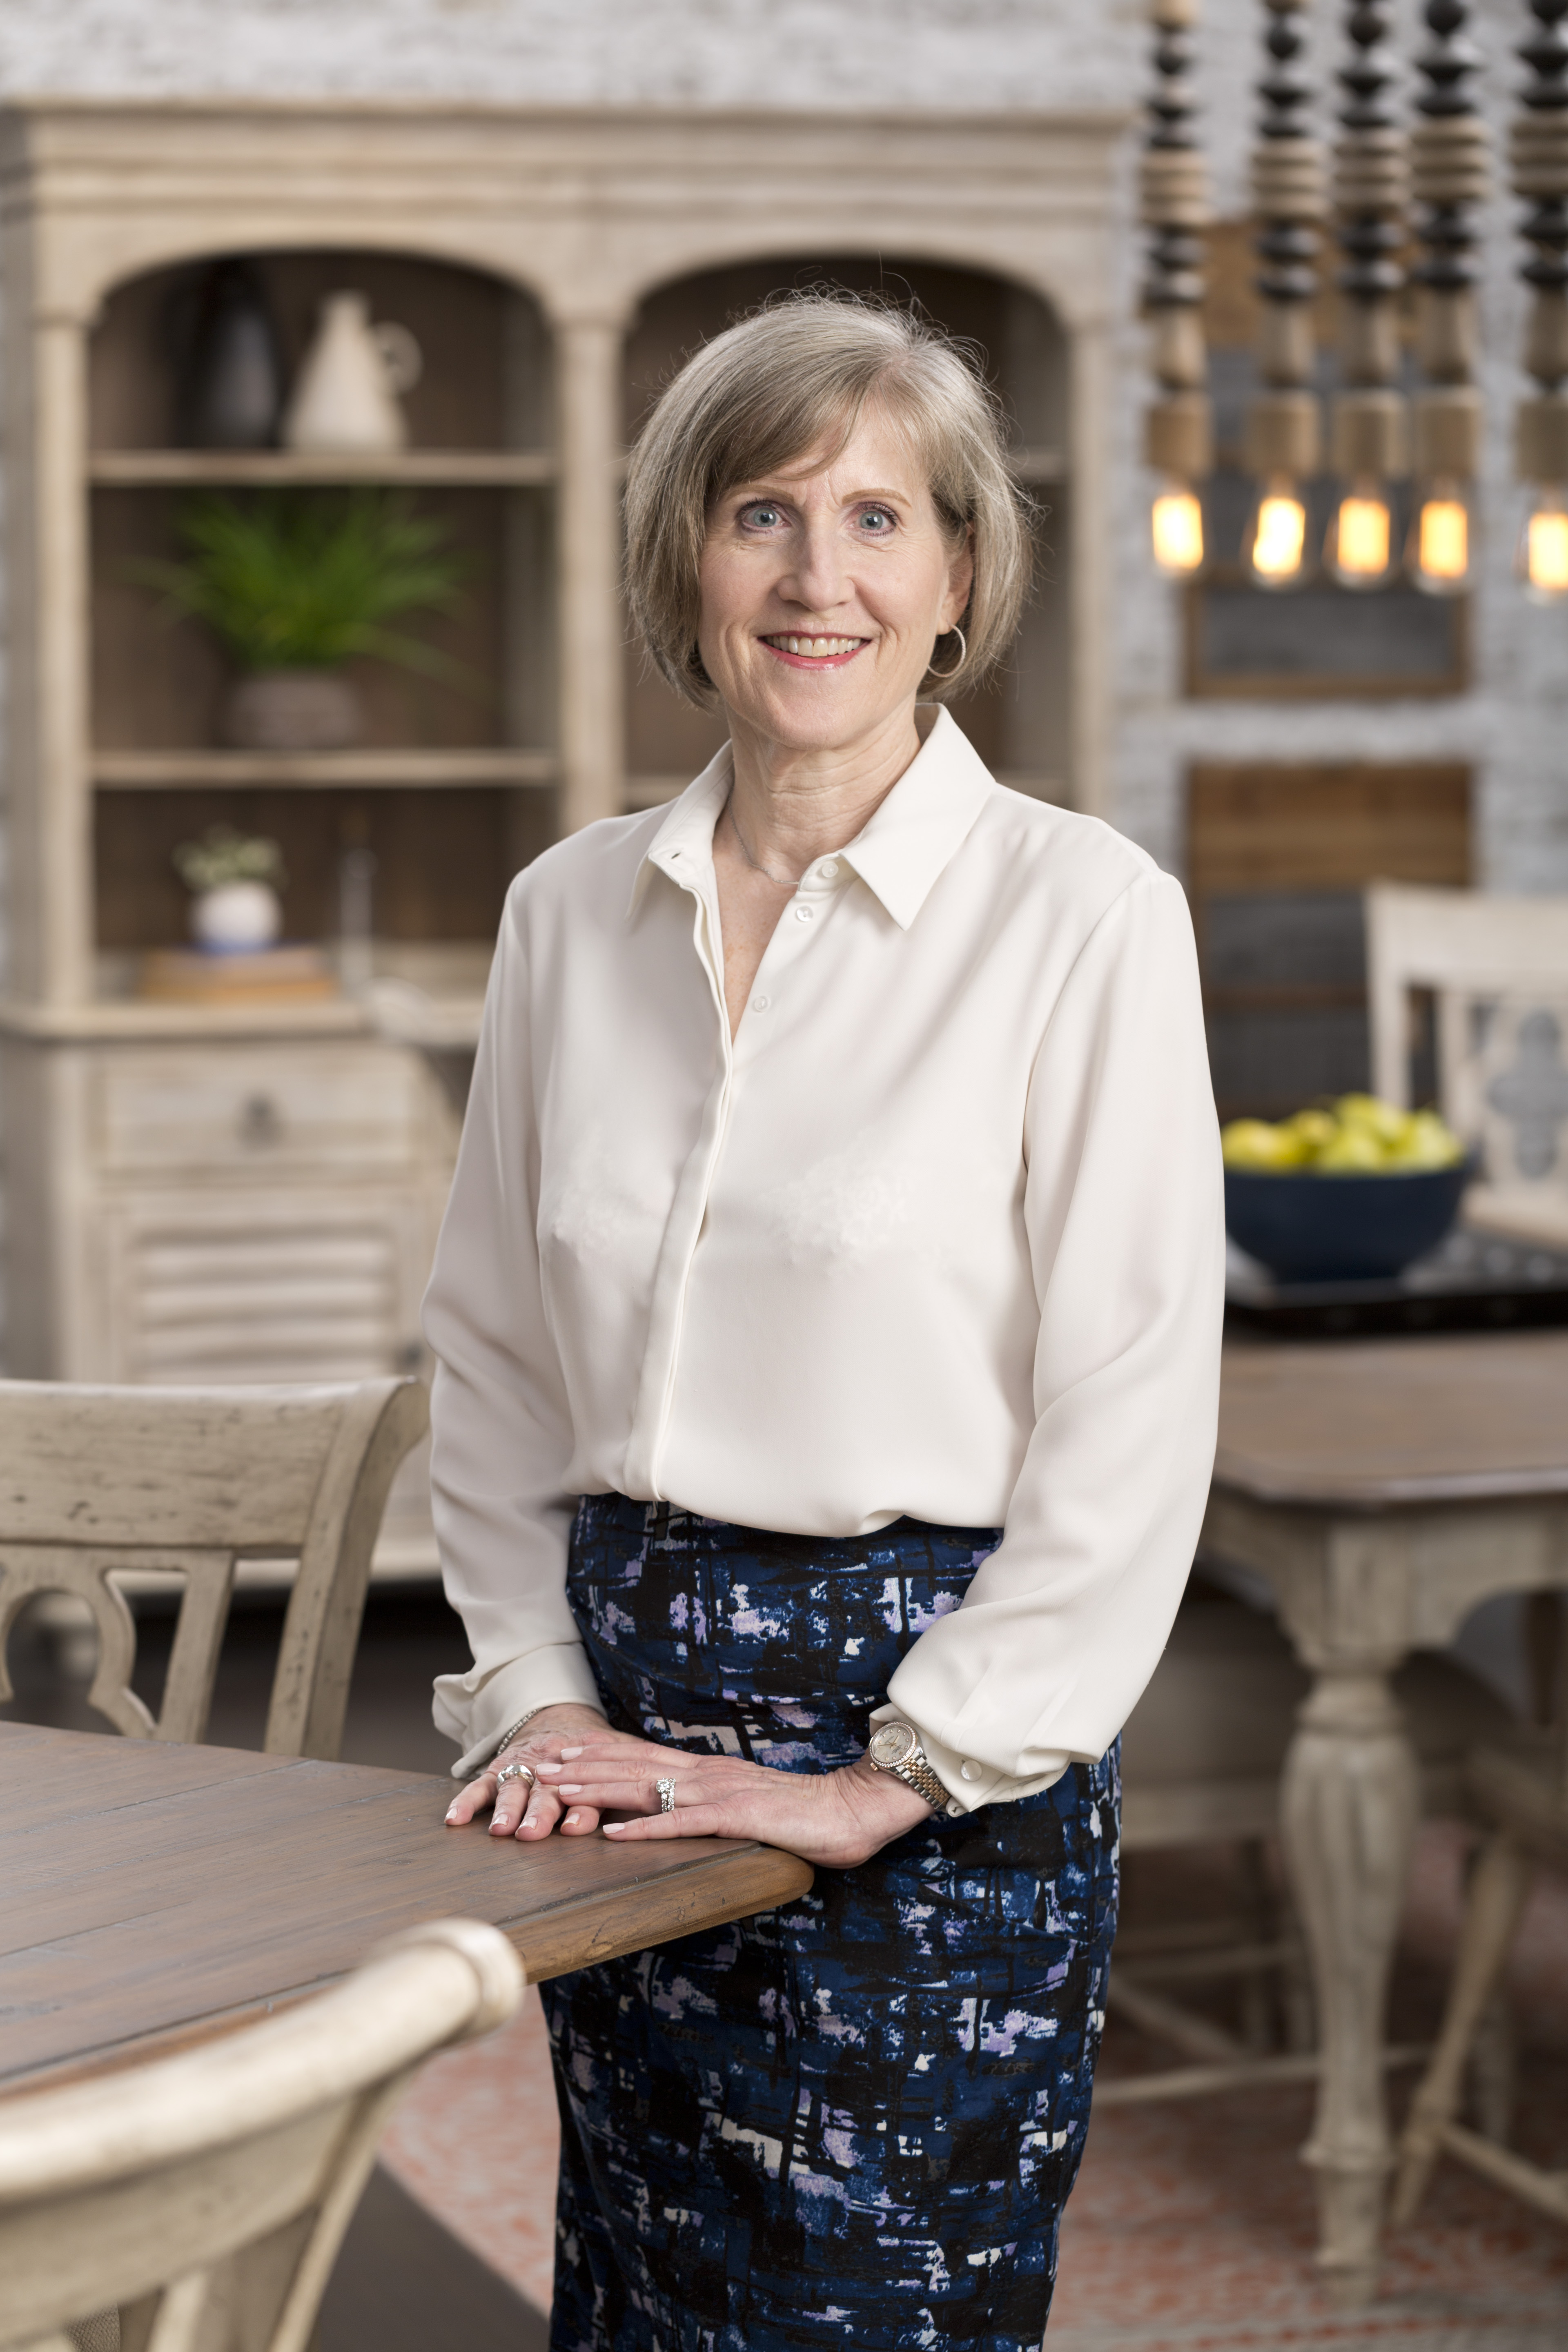 Star Furniture A Berkshire Hathaway Division Retailer Has Promoted Sharon Gjertsen To Vice President Merchandising Effective July 1